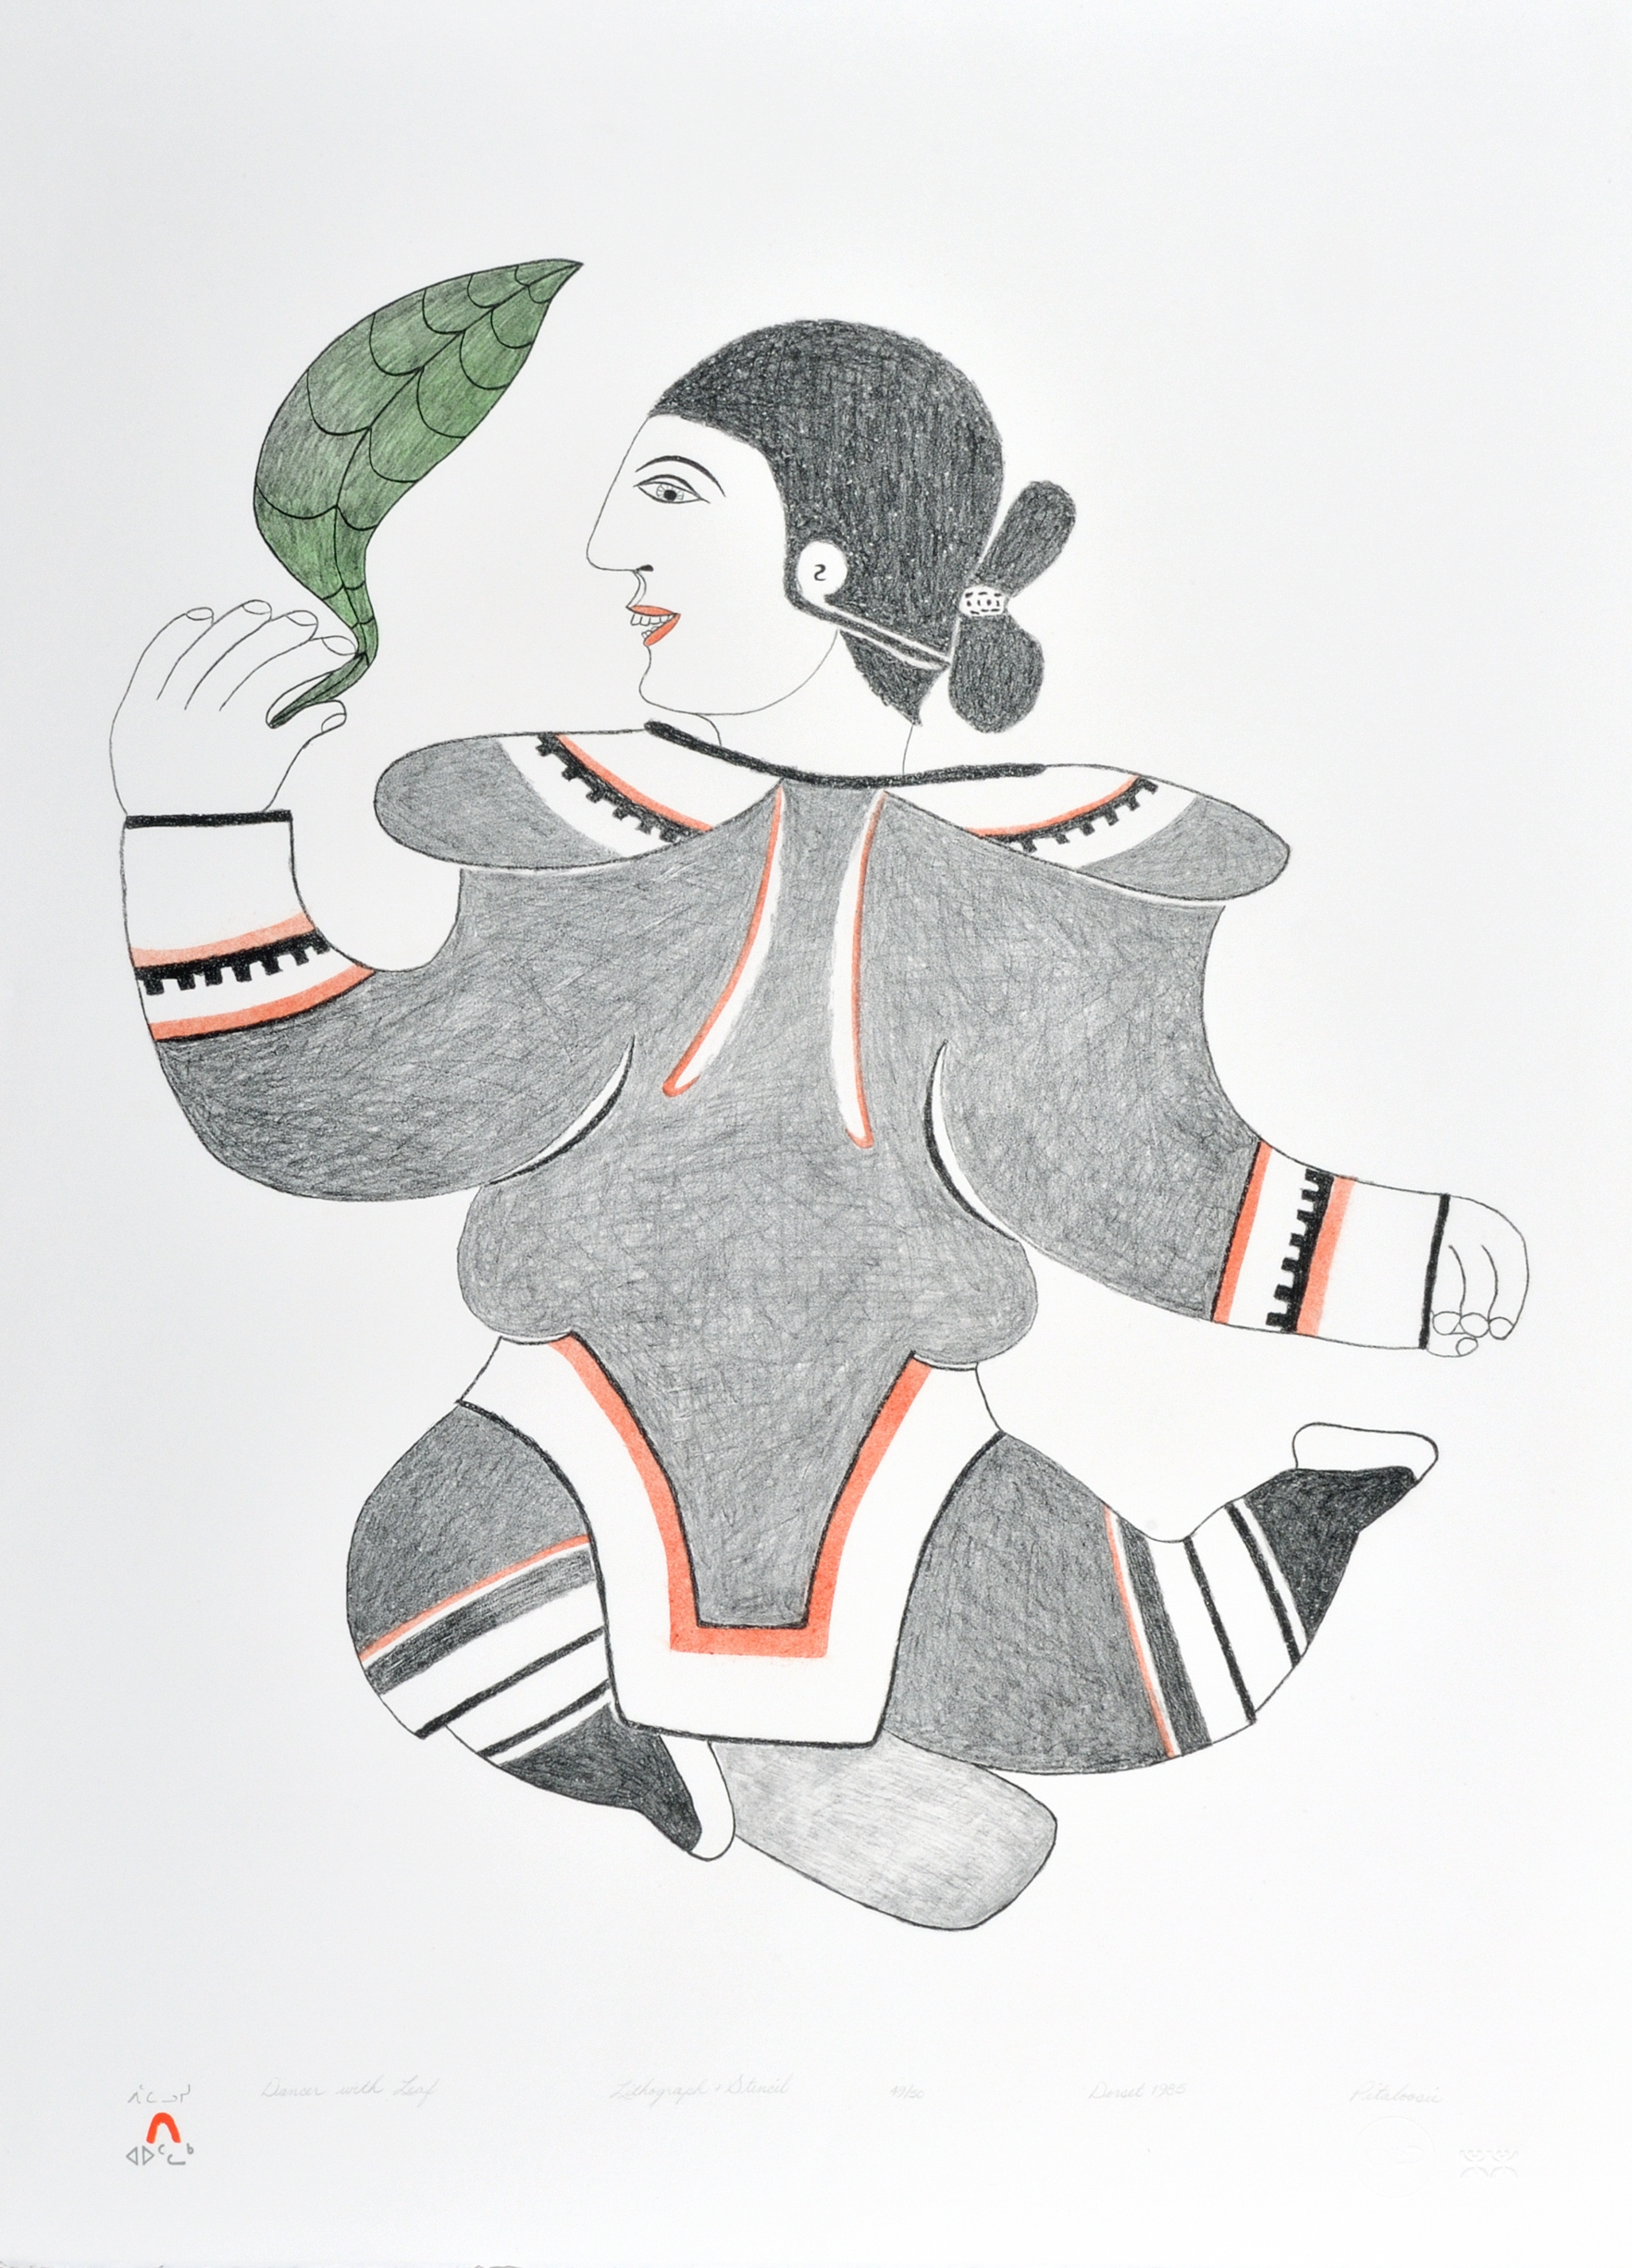 Pitaloosie Saila  DANCER WITH LEAF Lithograph & Stencil   1985 78 x 55.5 cm $300.00 CDN Released in the 1985 collection Dorset ID#: 85-21